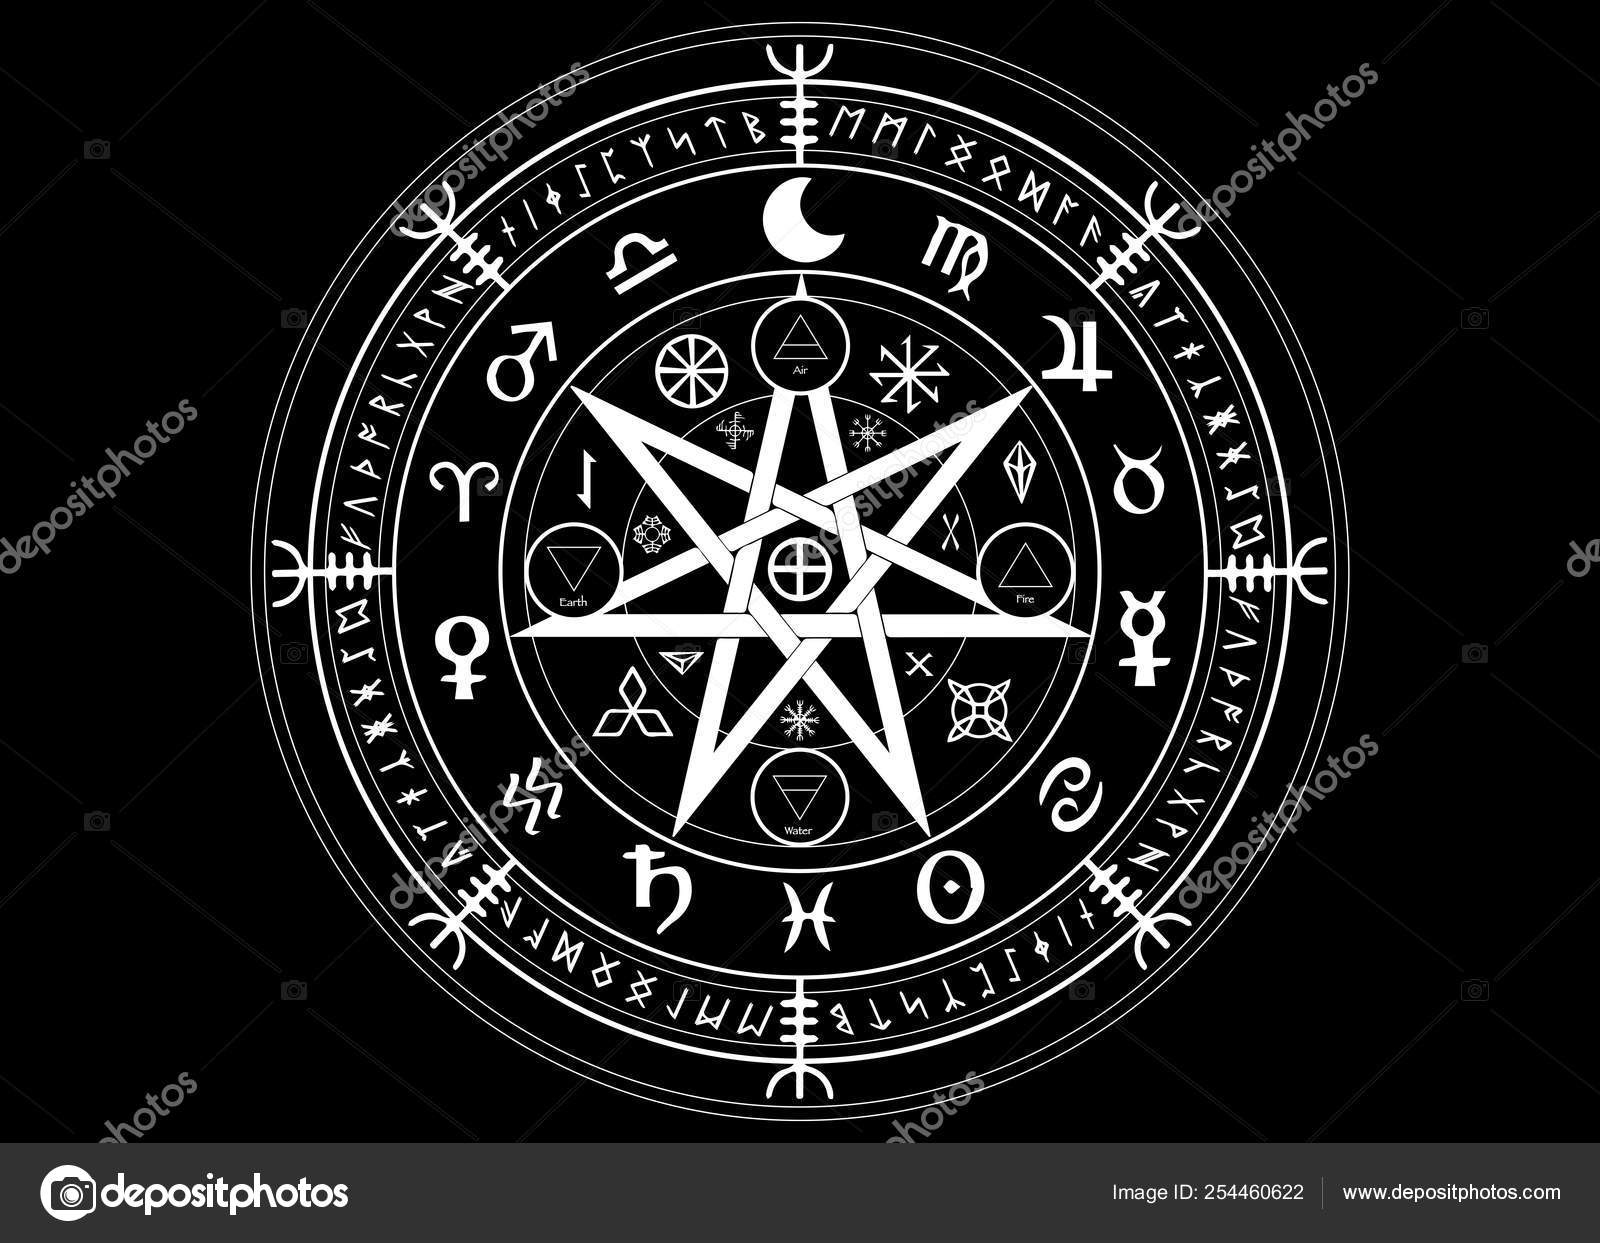 Wicca Hexe Star Collection Star Wicca Rune GER